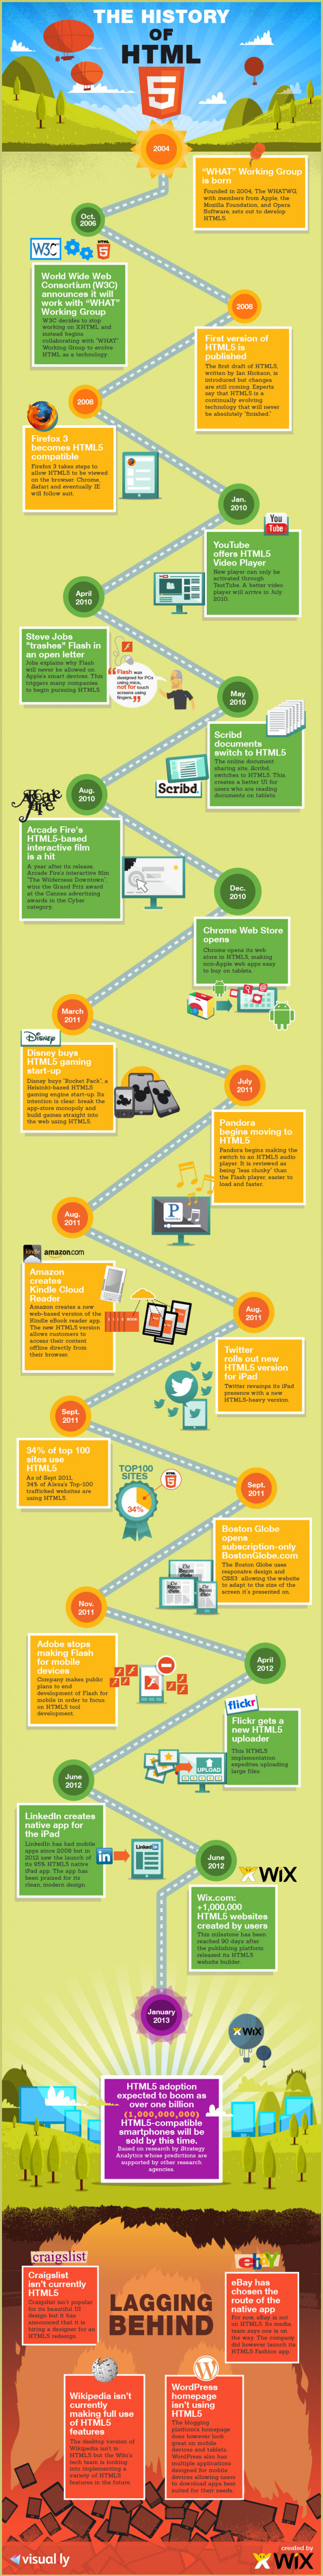 The Authentic Infographic History of HTML5